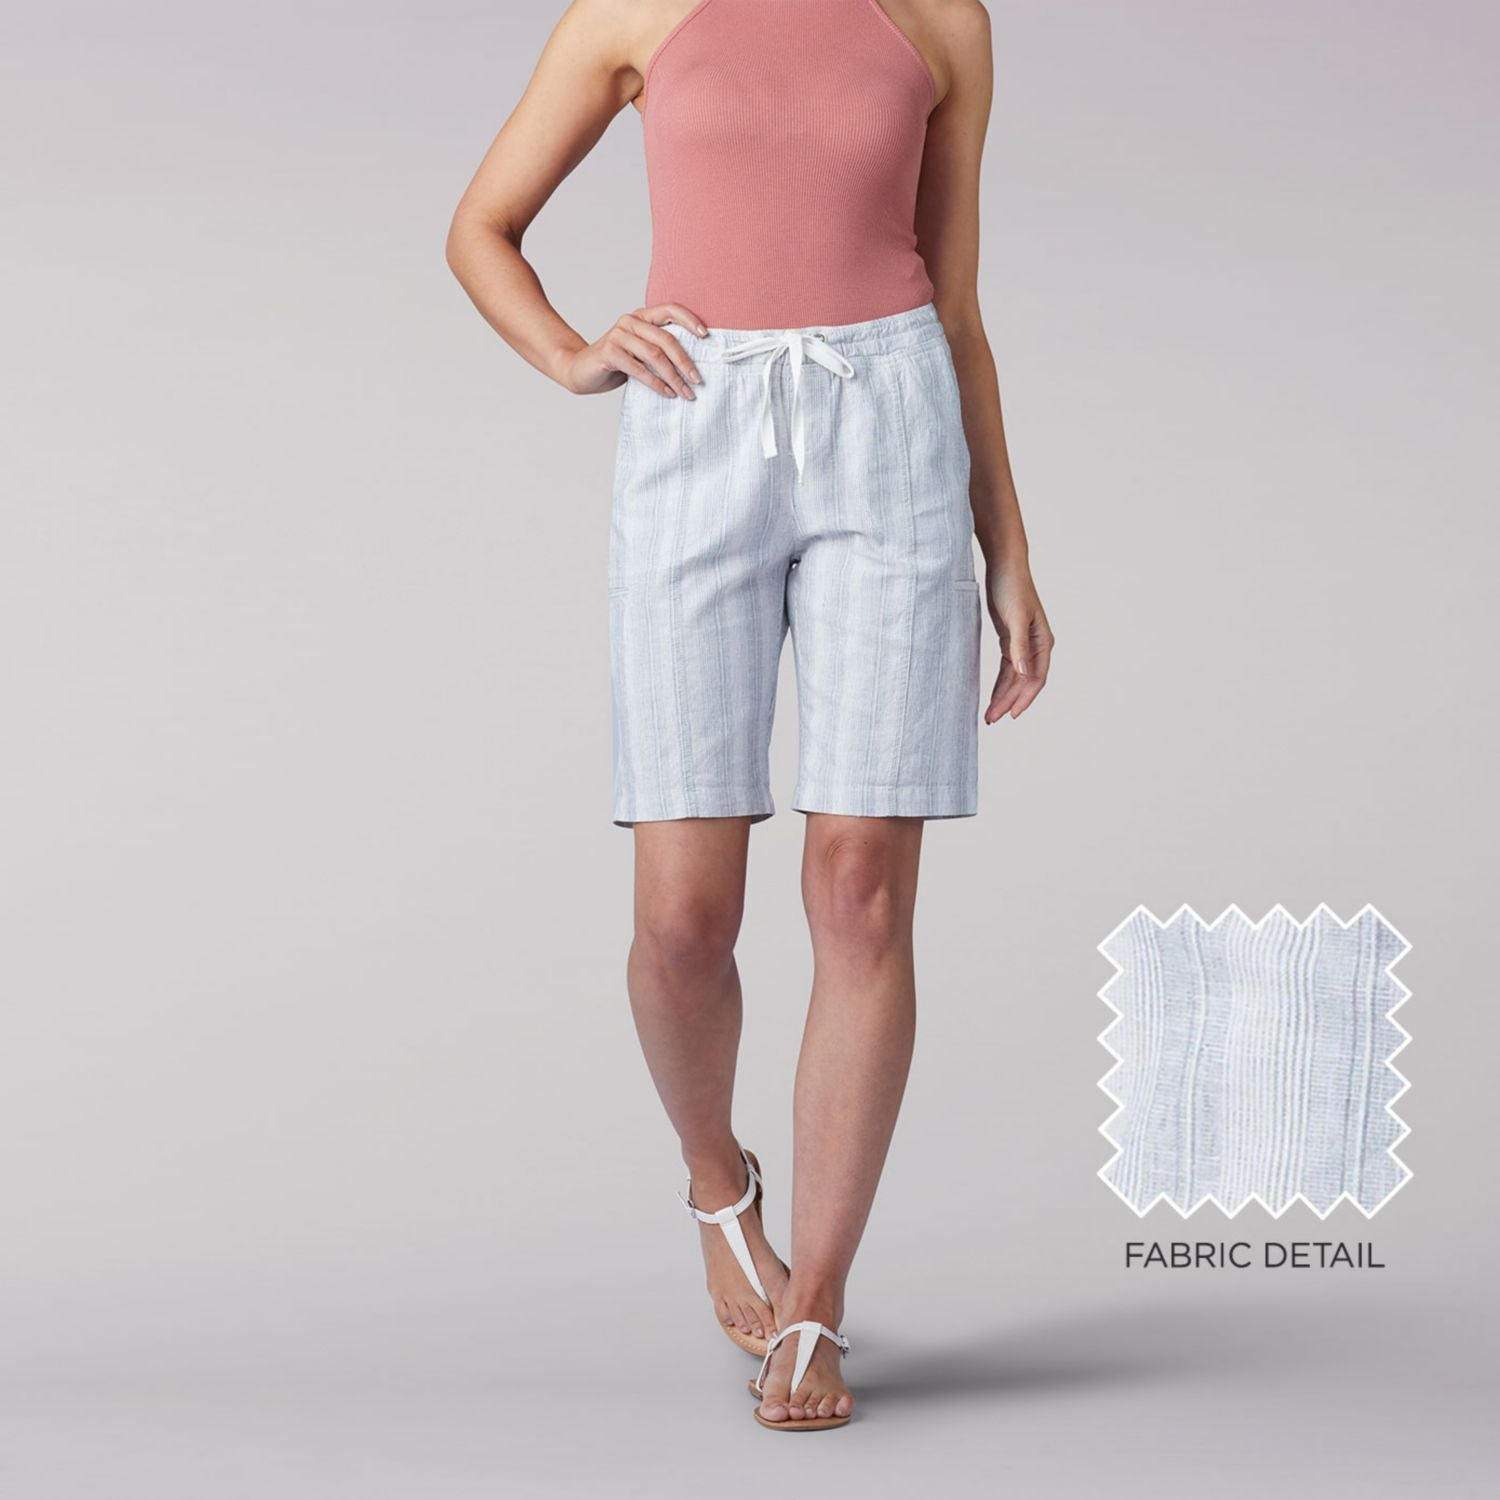 Flex-To-Go Relaxed Fit Pull On Cargo Bermuda Short in Grey White Stripe from Front View